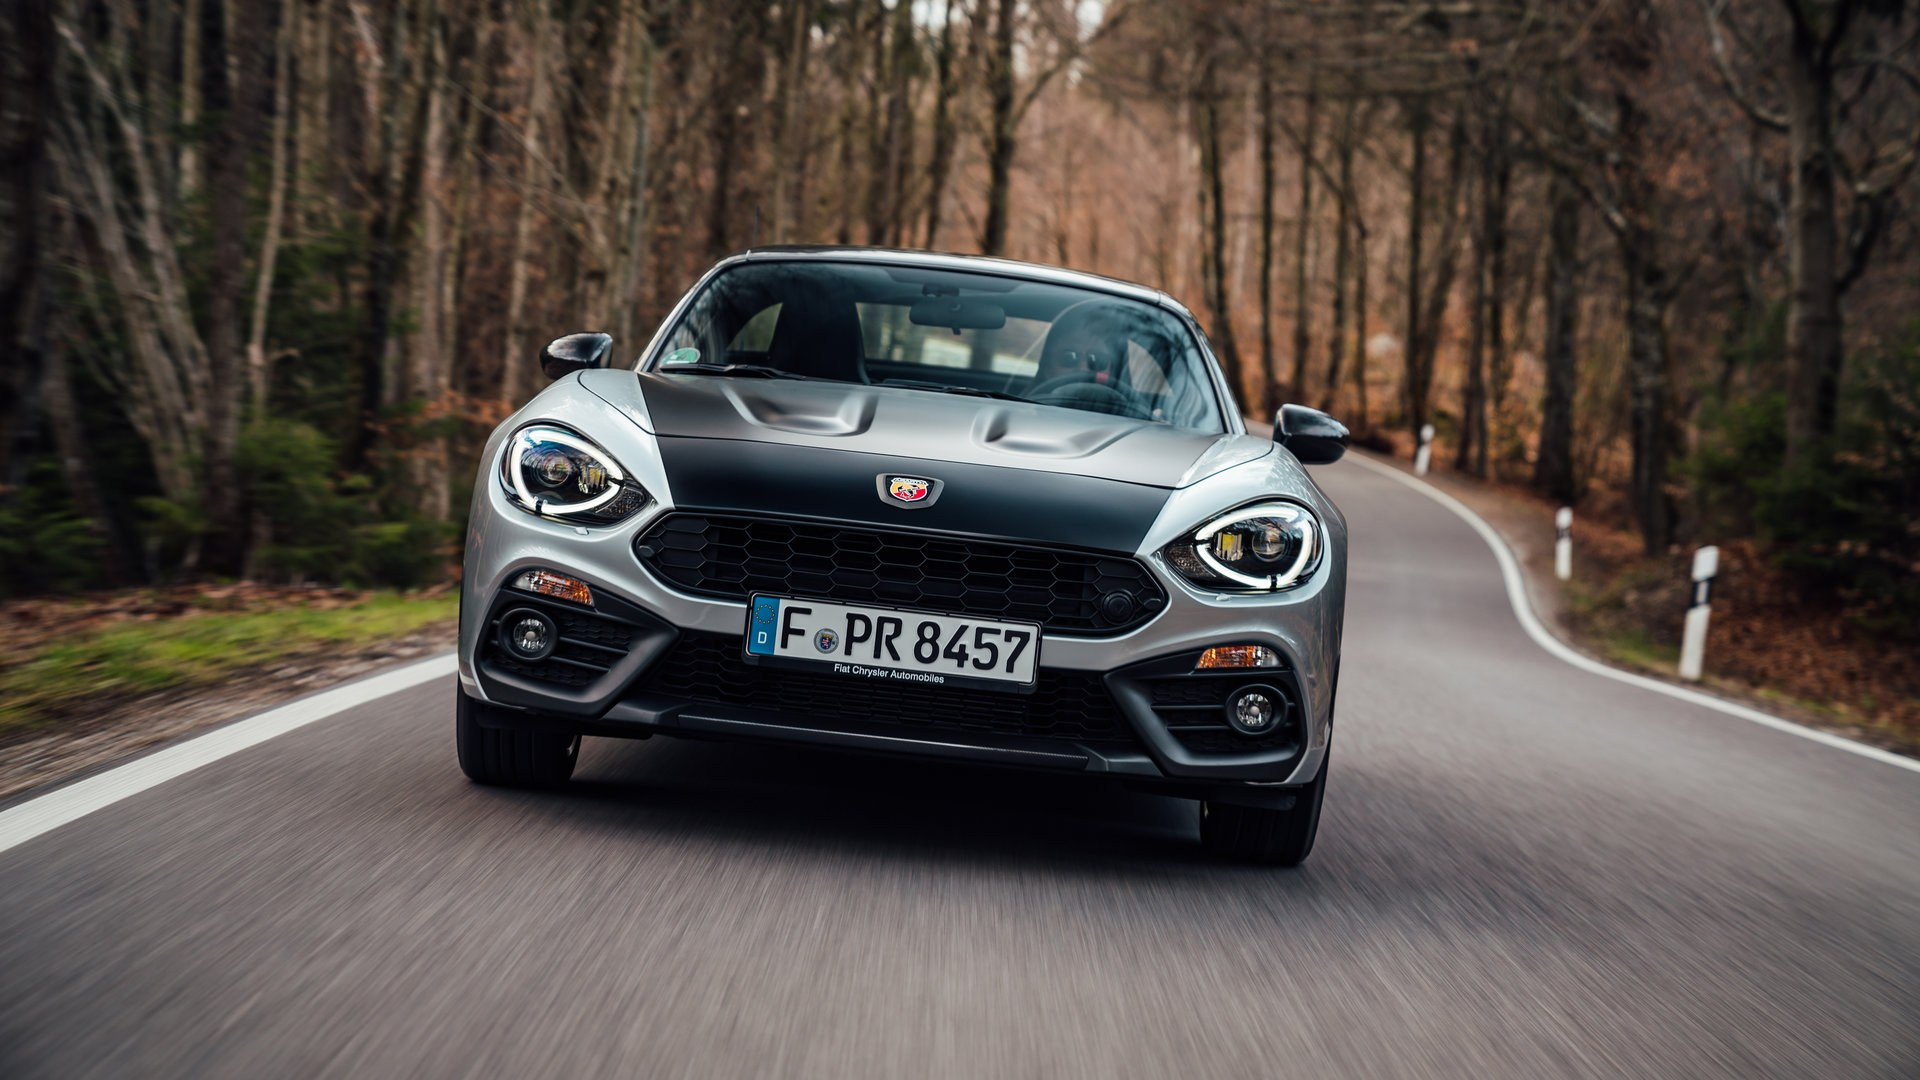 Top10 Miguel Angel Abarth 124 Spider GT